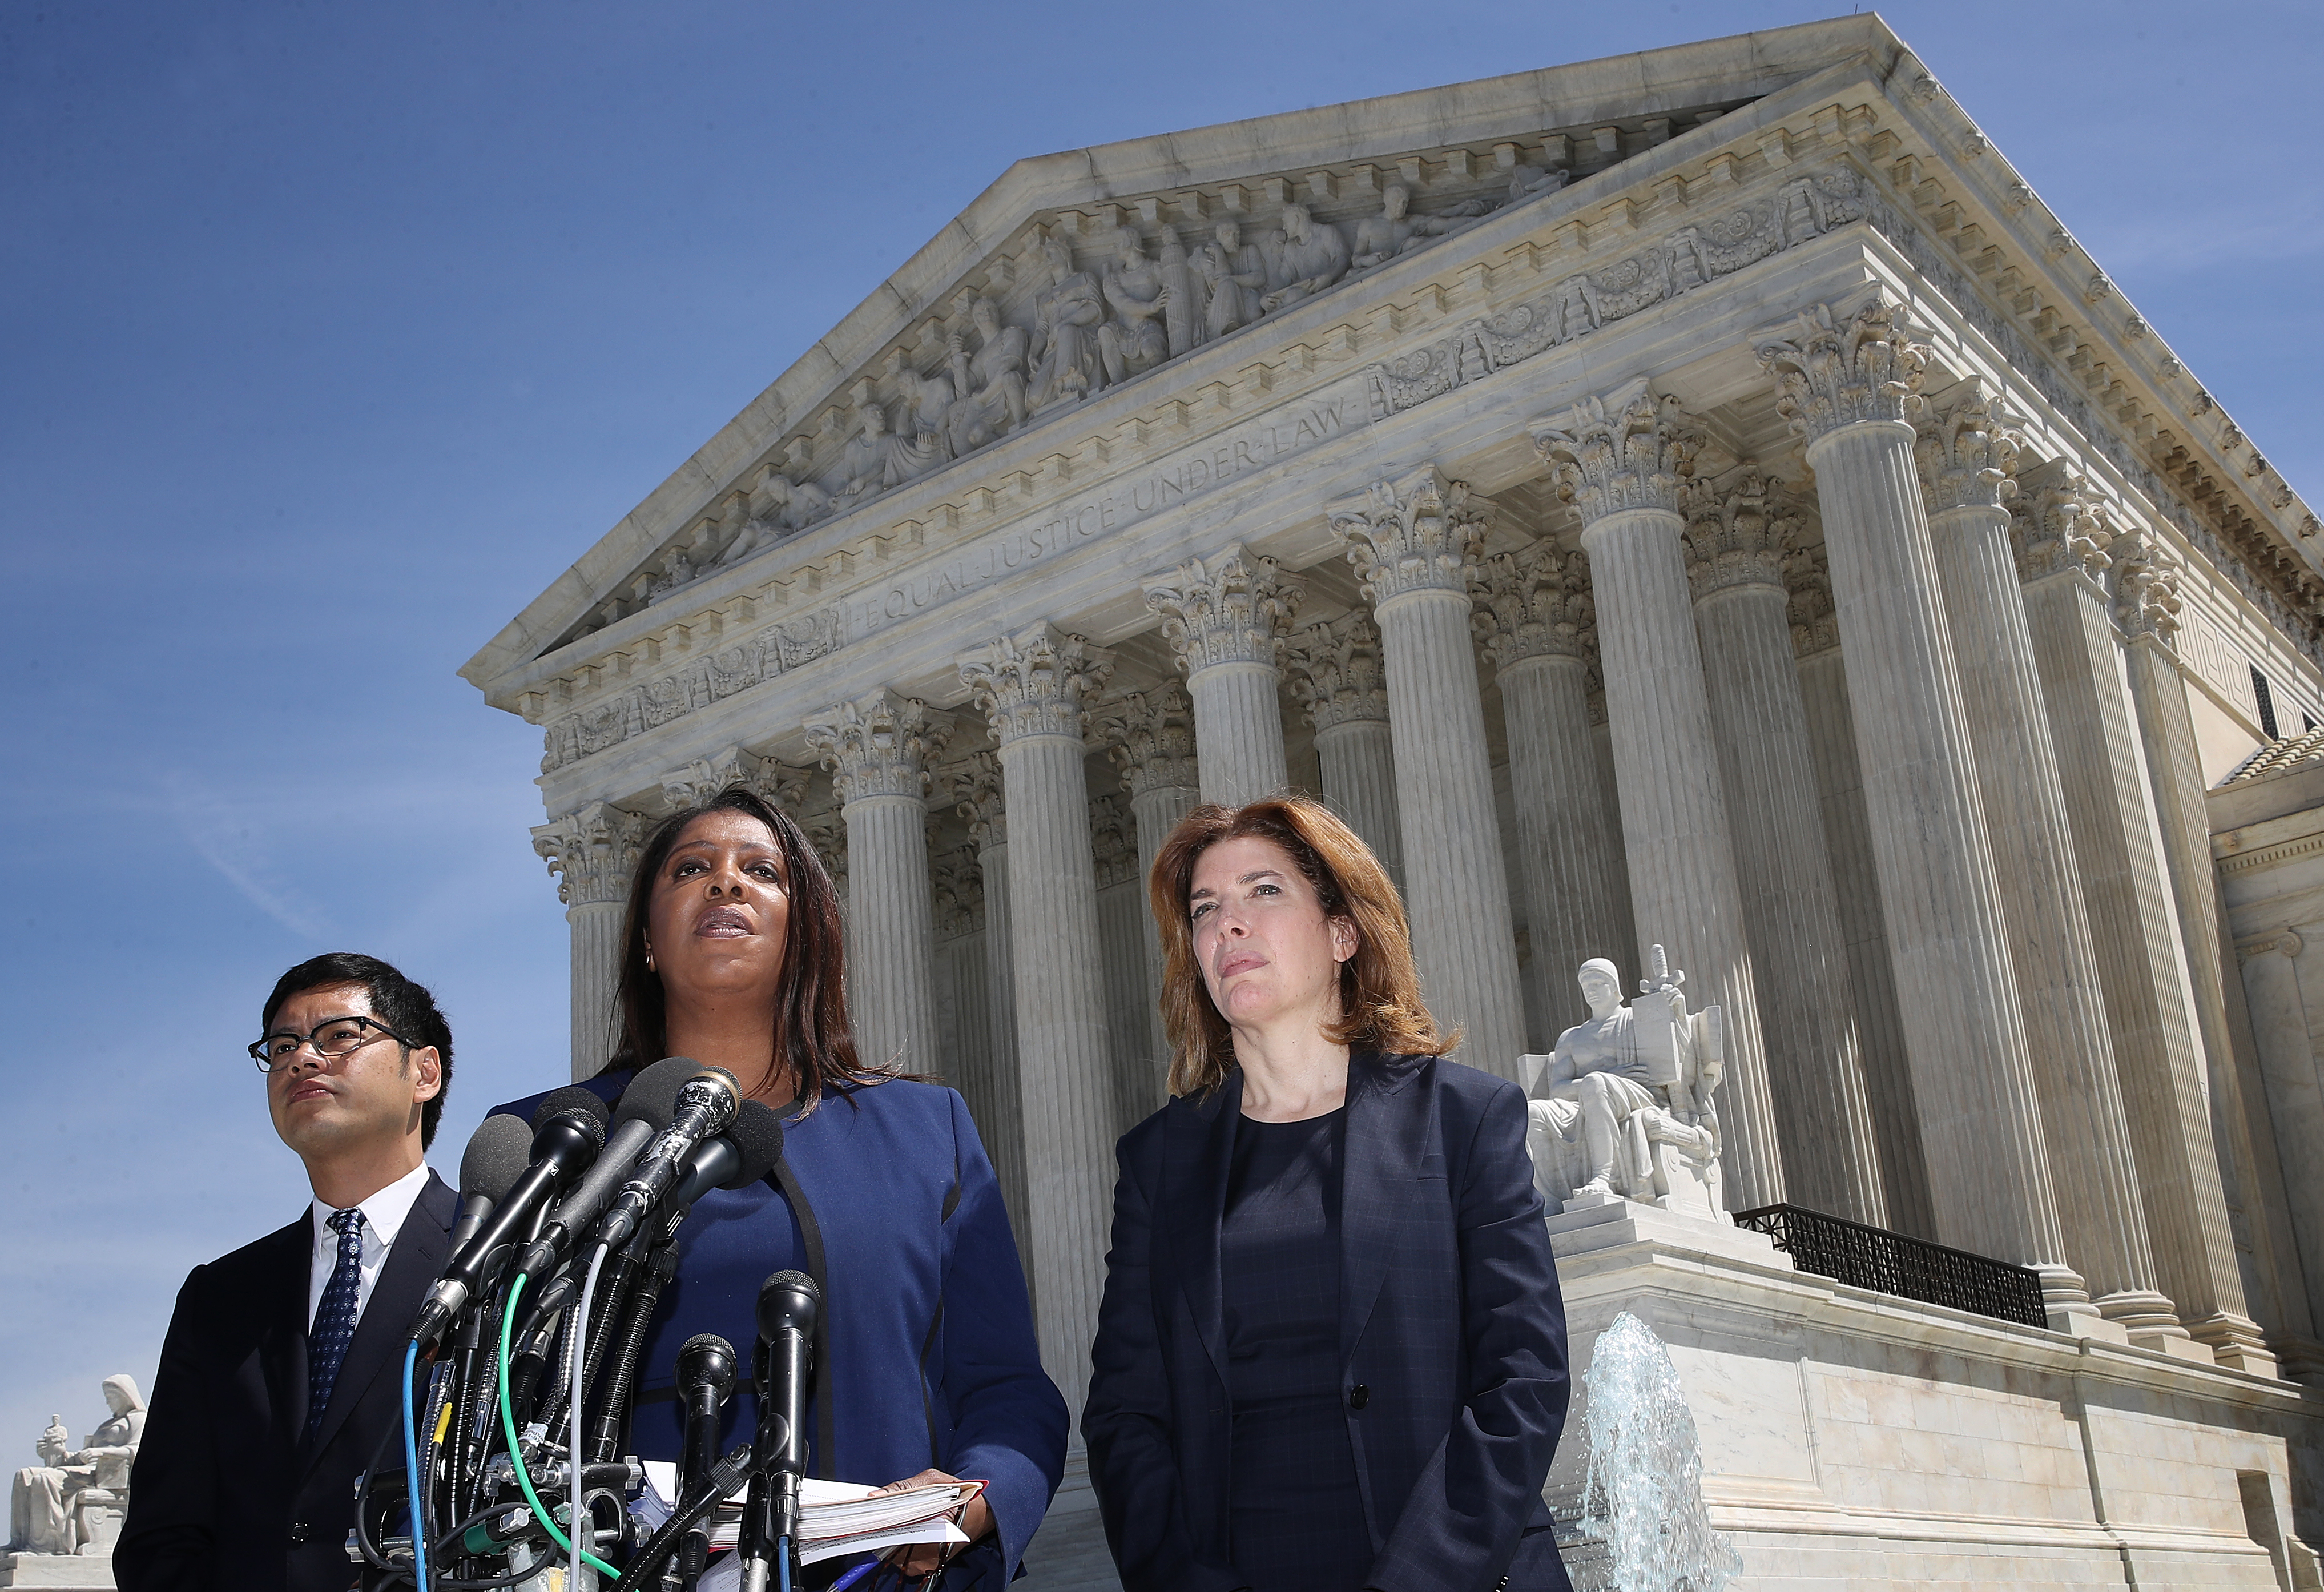 WASHINGTON, DC - APRIL 23: New York Attorney General Letitia James (C), New York Census Director Julie Menin (R) and ACLU's Director of the Voting Project Dale Ho (L) answer questions outside the U.S. Supreme Court after the court heard oral arguments in the Commerce vs. New York case April 23, 2019 in Washington, DC. The case highlights a question about U.S. citizenship included by the Trump administration in the proposed 2020 U.S. census. (Photo by Win McNamee/Getty Images)